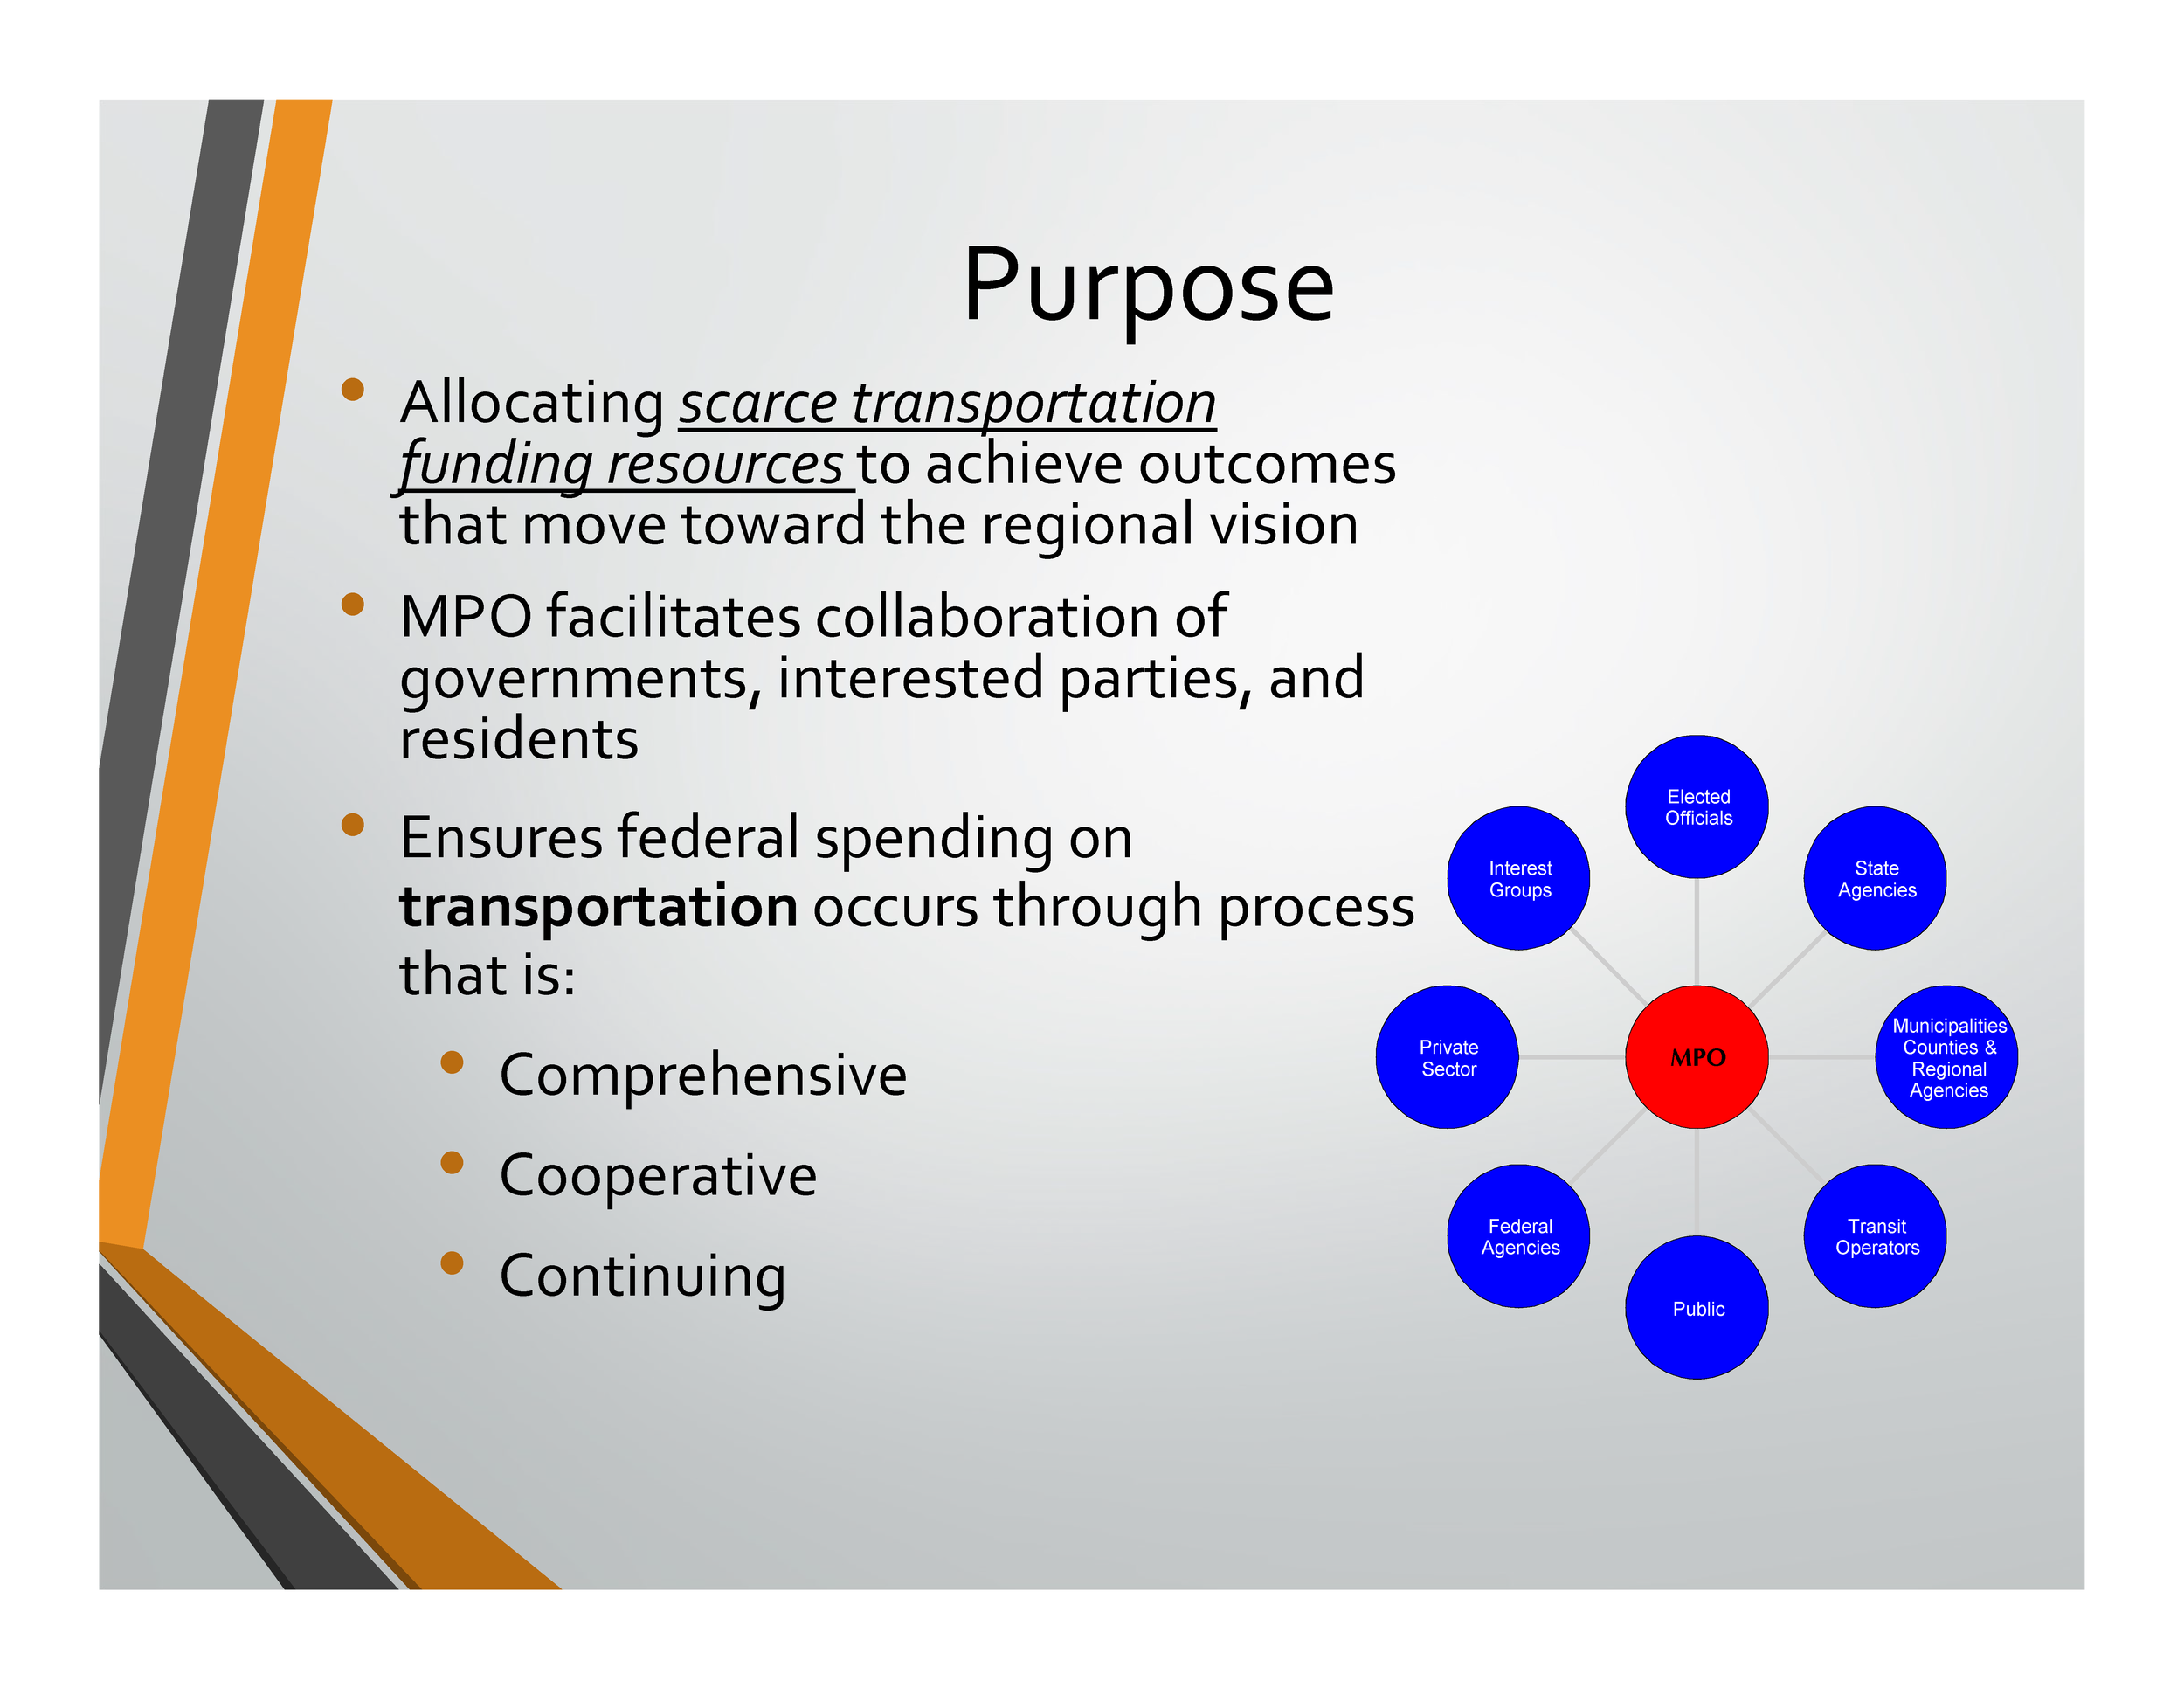 Slide content courtesy of the Kalamazoo Area Transportation Study, edited for presentation.